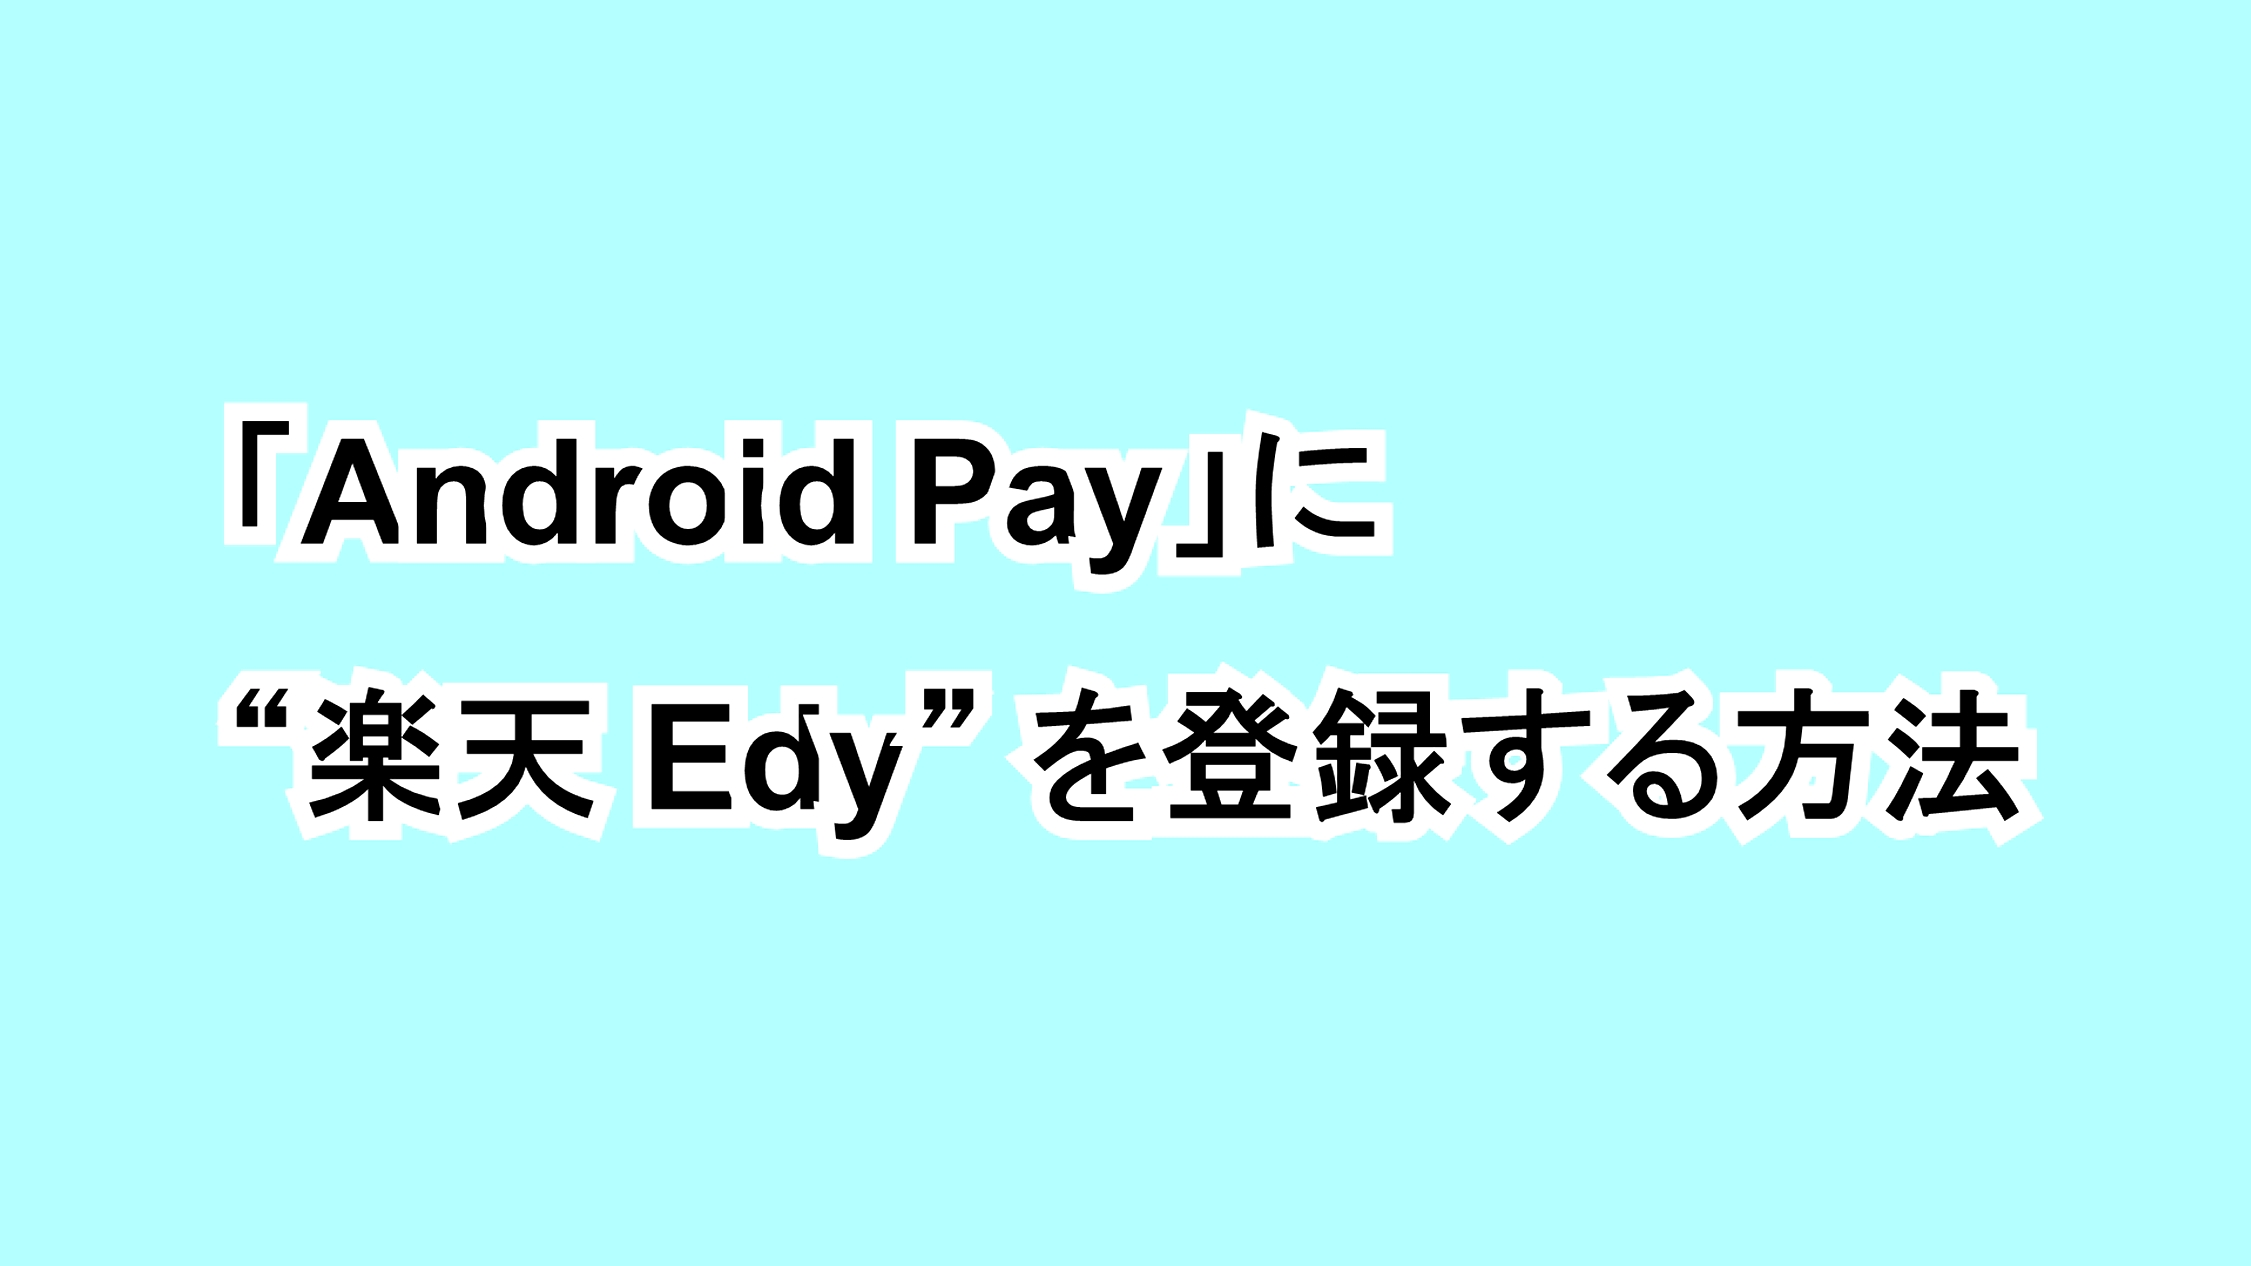 「Android Pay」に「楽天 Edy」を登録する方法